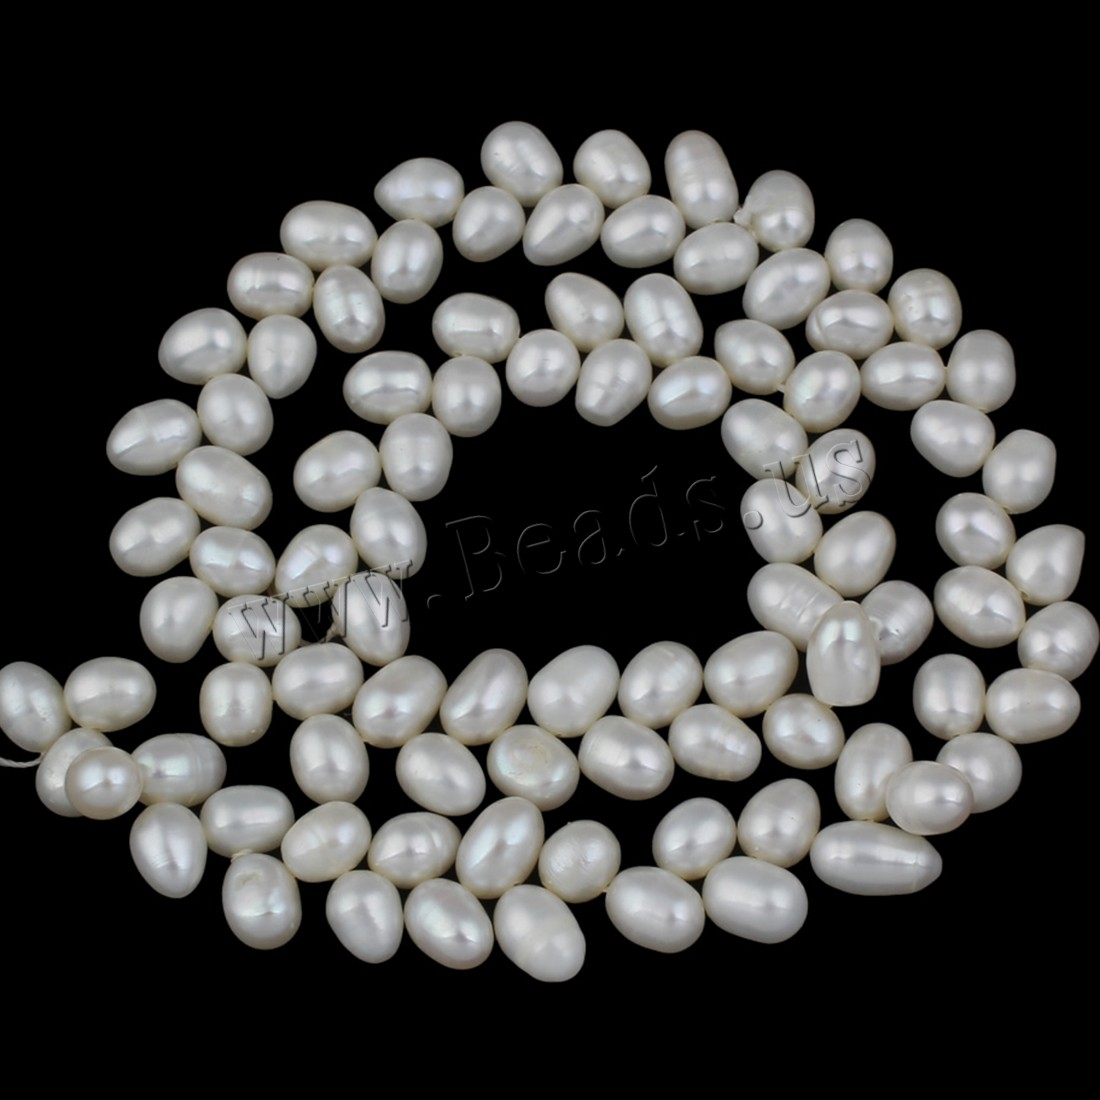 Buy Clearance Freshwater Pearl Beads Rice natural white 7-8mm Hole:Approx 0.8mm Sold Per Approx 15 Inch Strand